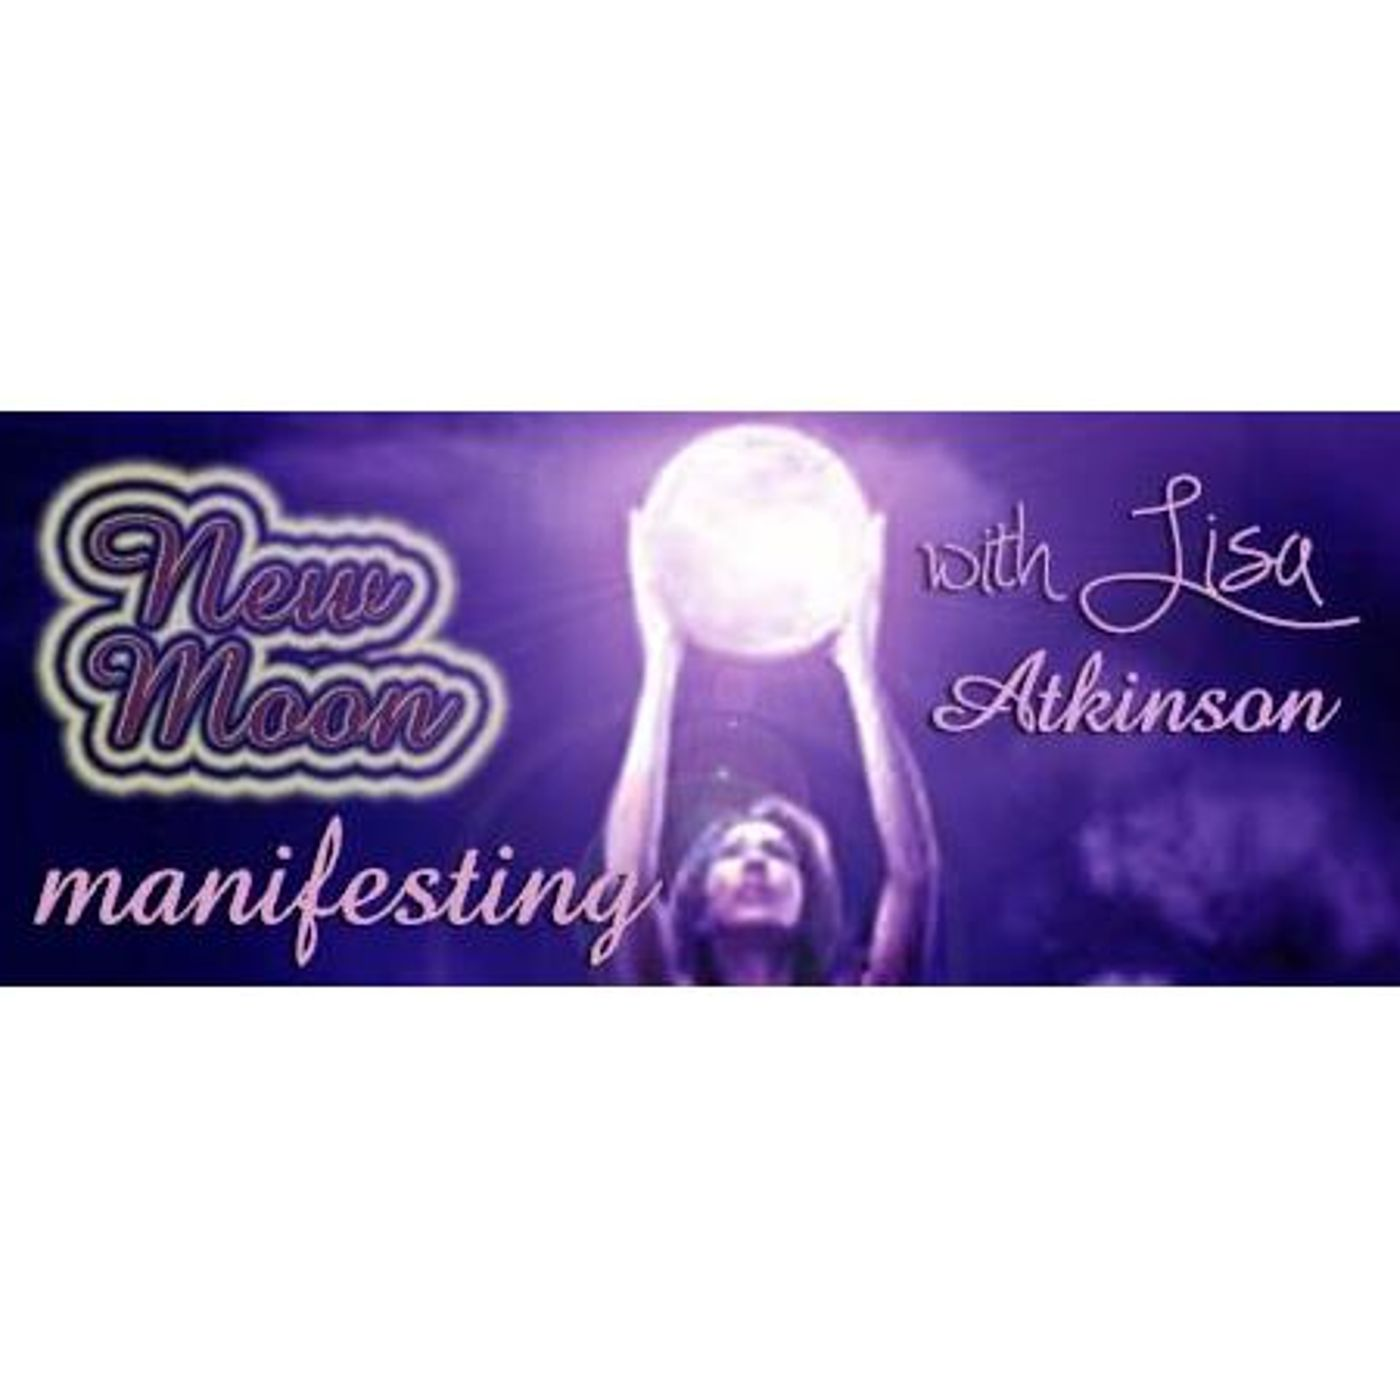 POWER New Moon Manifesting FREE Guided Ceremony Ritual